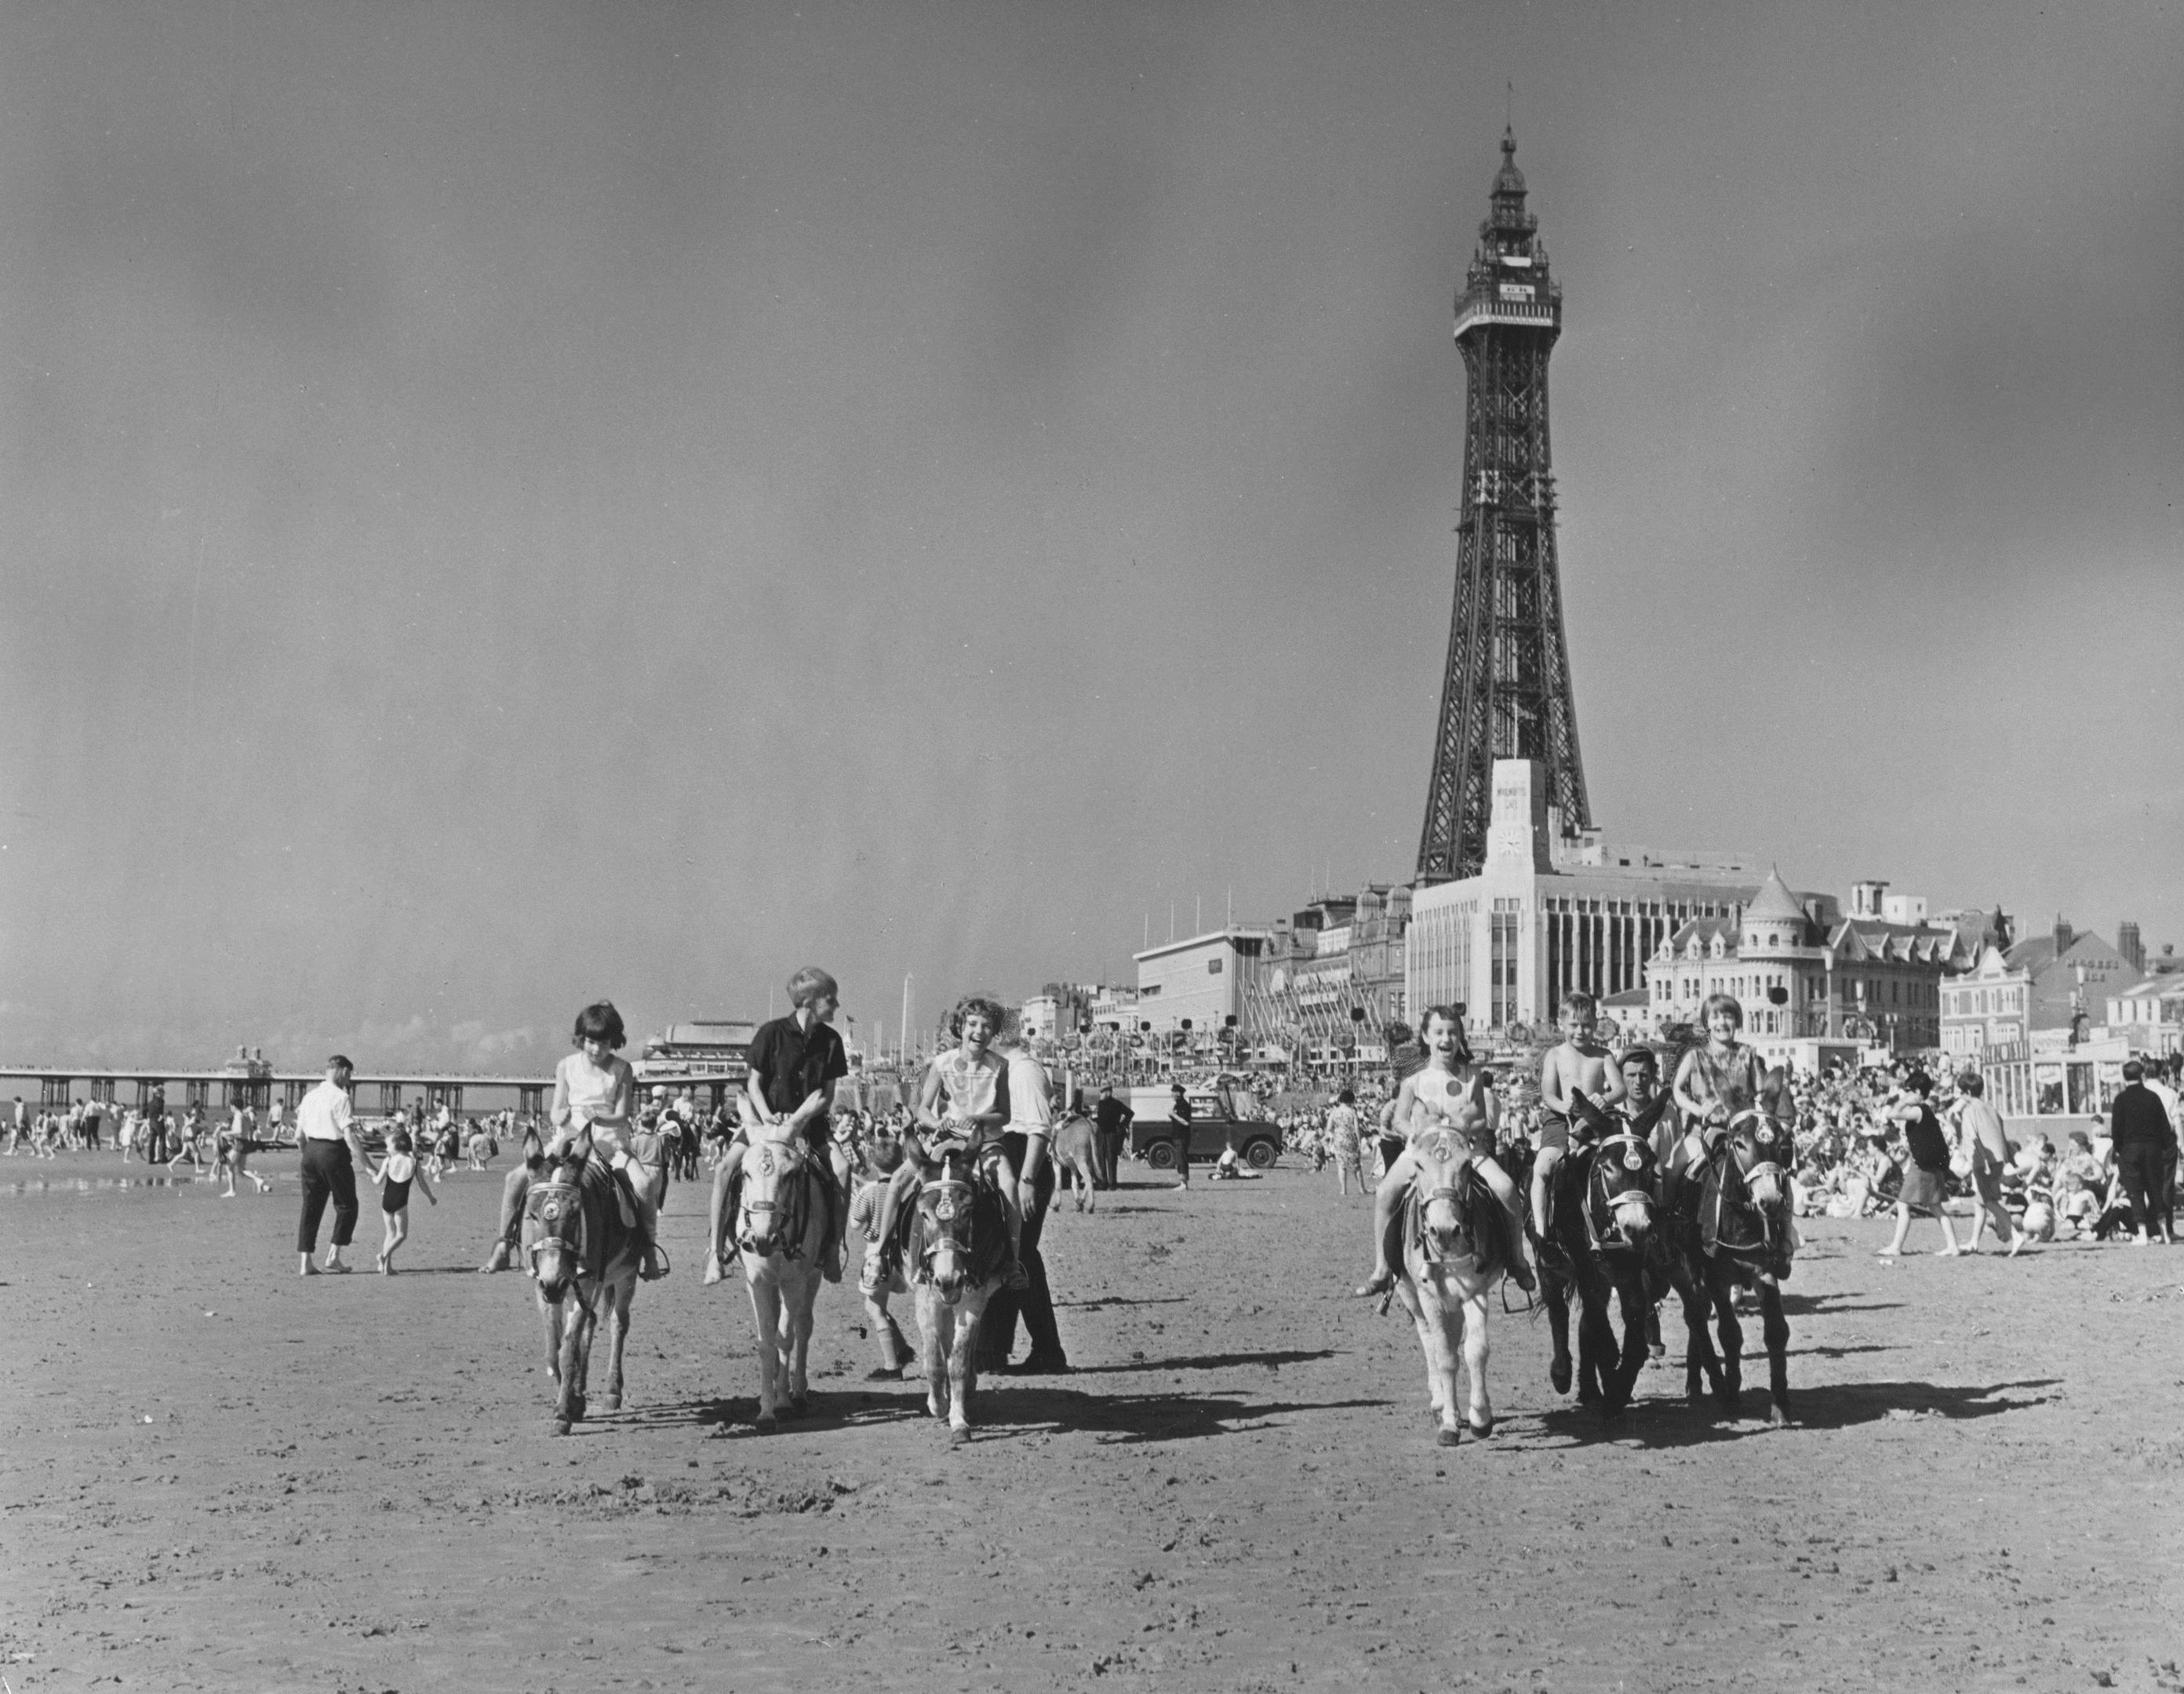 A busy Blackpool beach, 1965 (George Freston/Fox Photos/Getty Images)